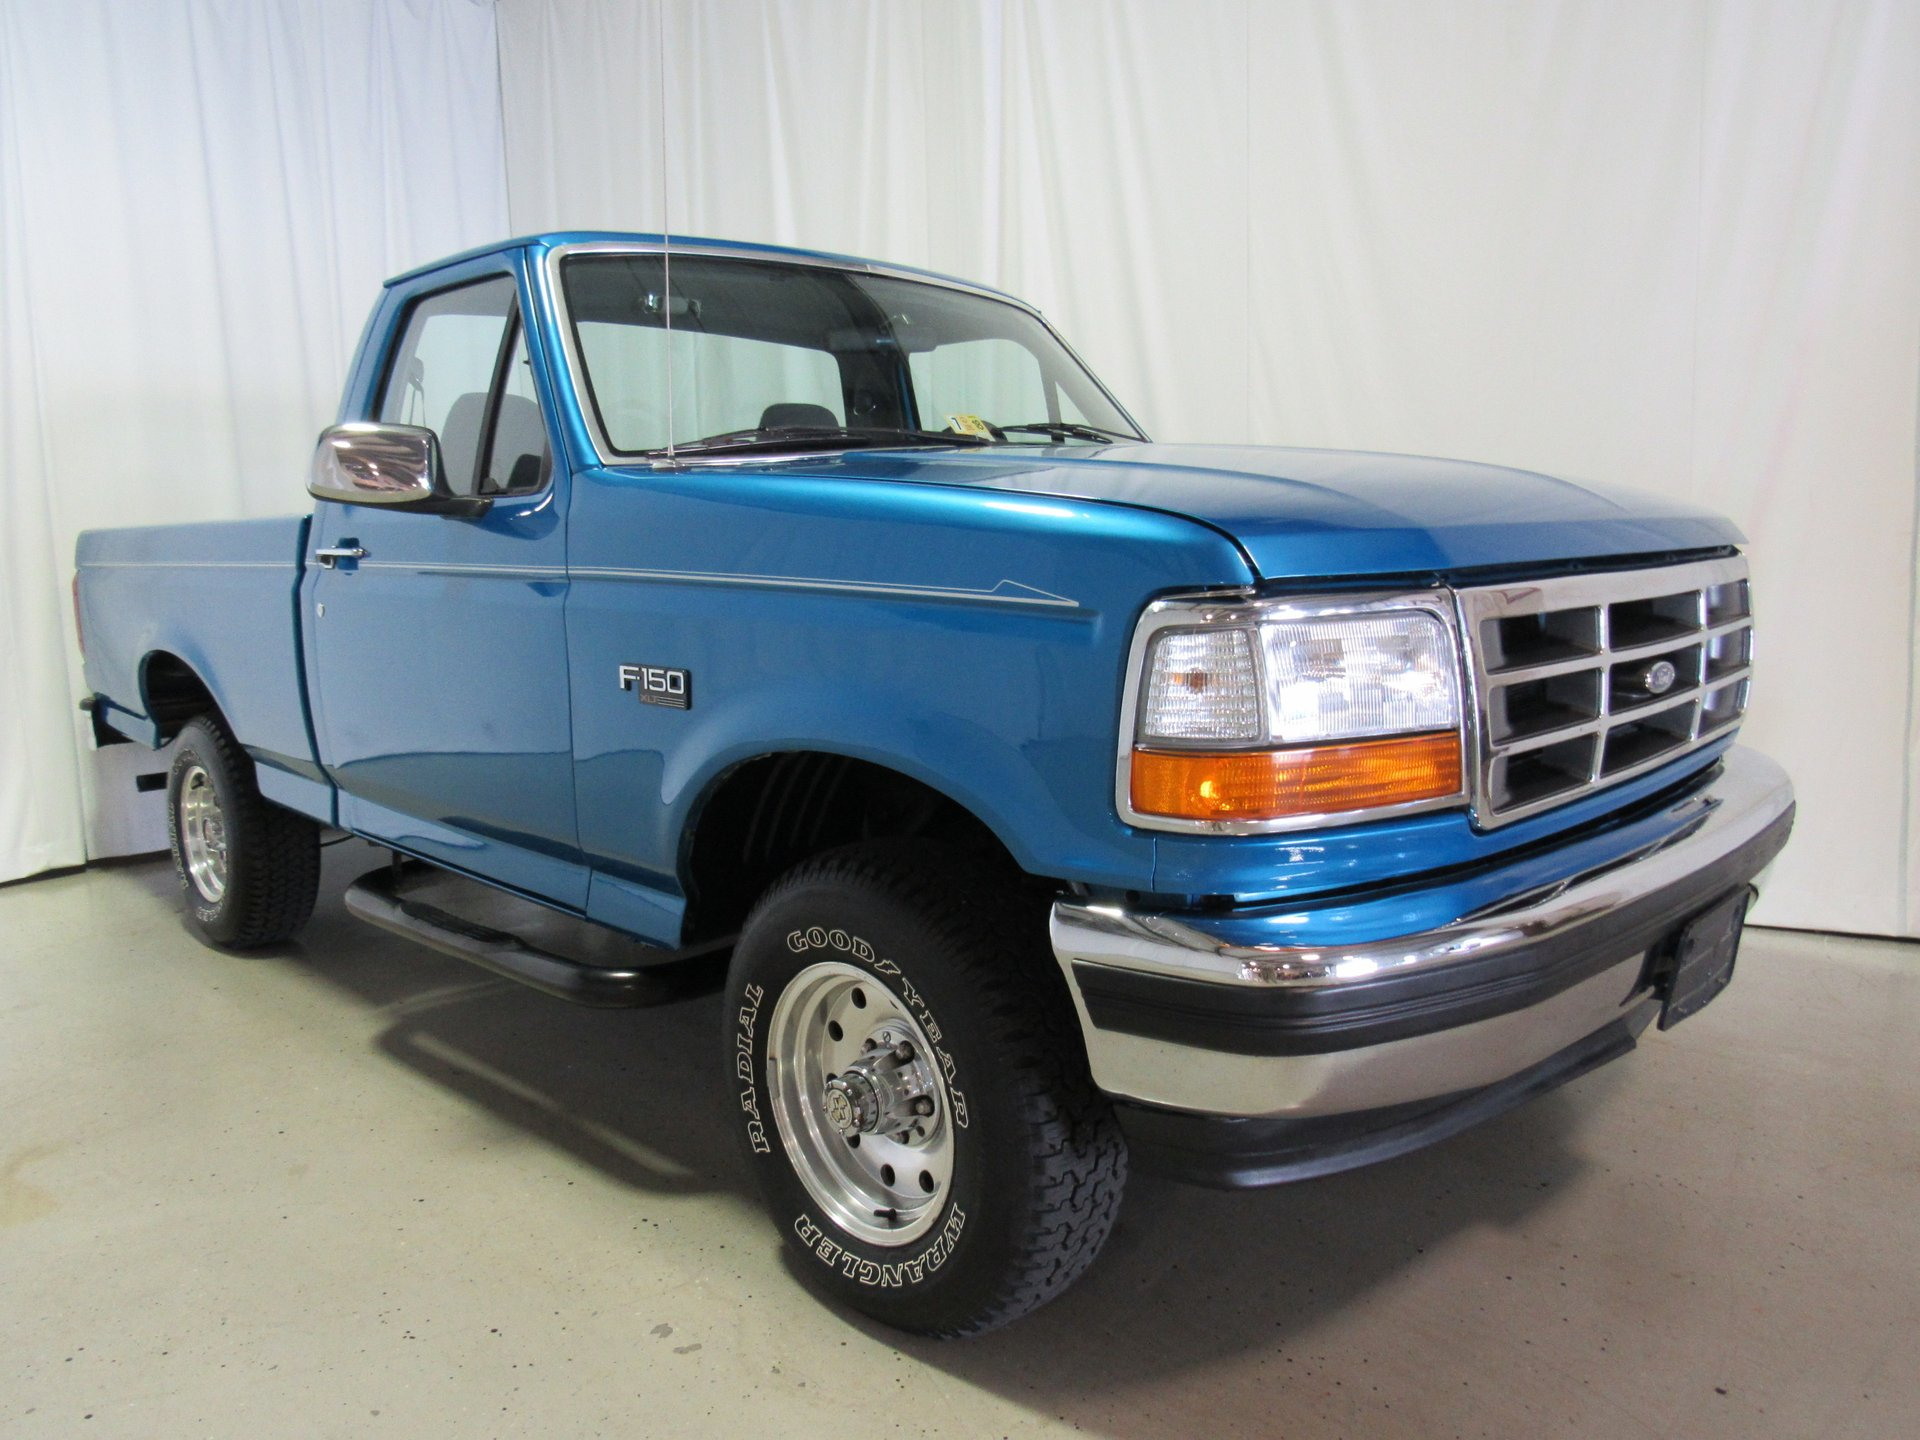 Duraliner Bed Liner >> 1994 Ford F150 | GAA Classic Cars